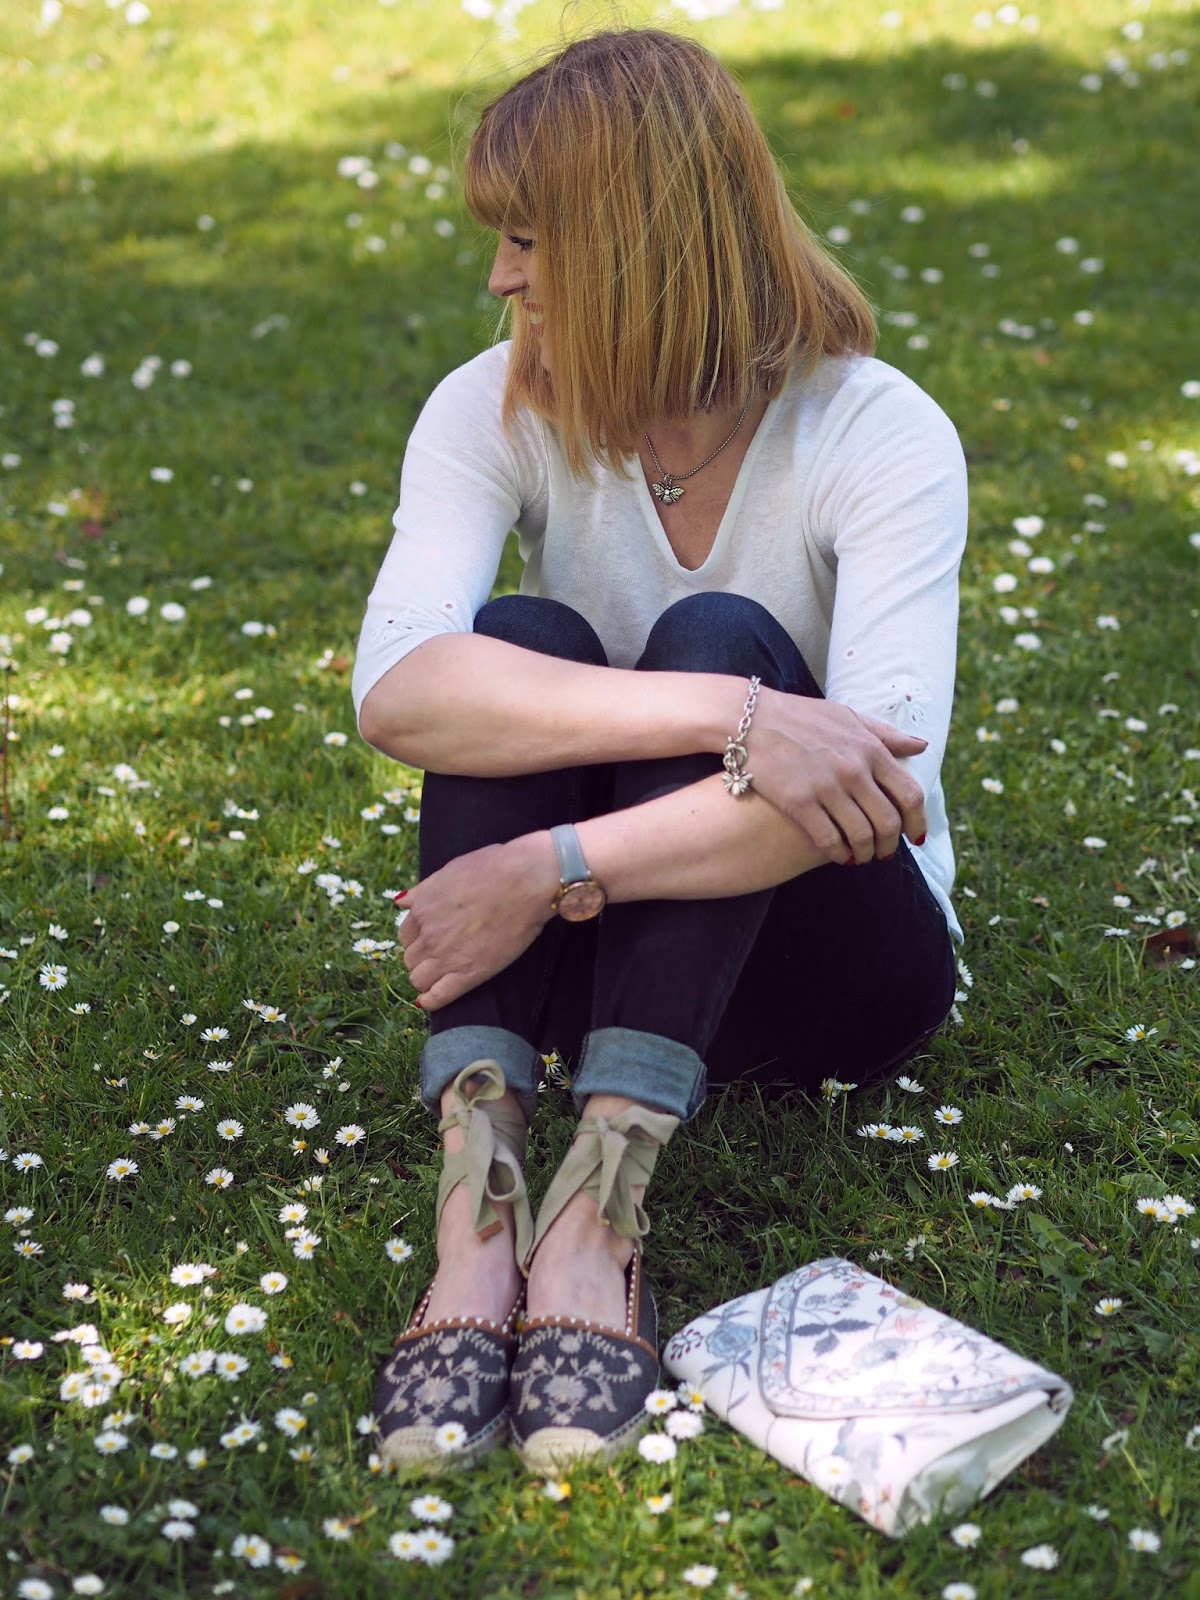 What-Lizzy-Loves-white-daisy-embroidered-linen-top-skinny-jeans-flower-embroidered-espadrilles-clutch-bag-bee-jewellery